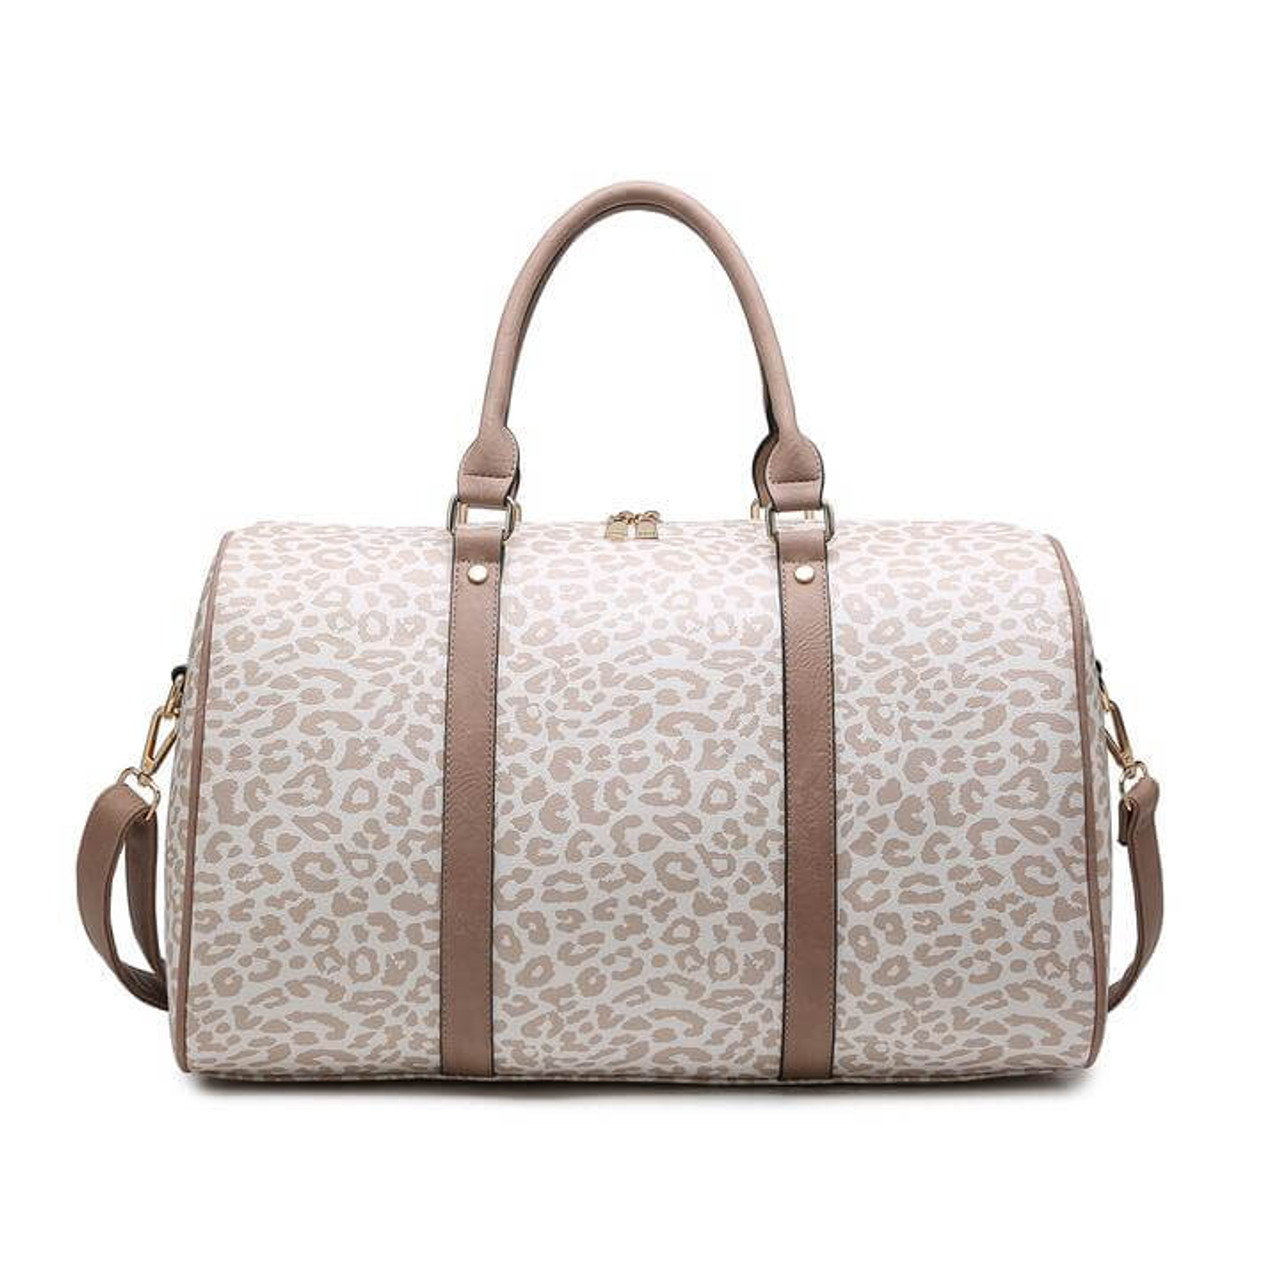 vegan leather duffel bag! Blush colored vegan leather and rose gold metal details. Includes one zipper and two slip pockets on the inside. The top zips closed and an adjustable/detachable shoulder strap is included